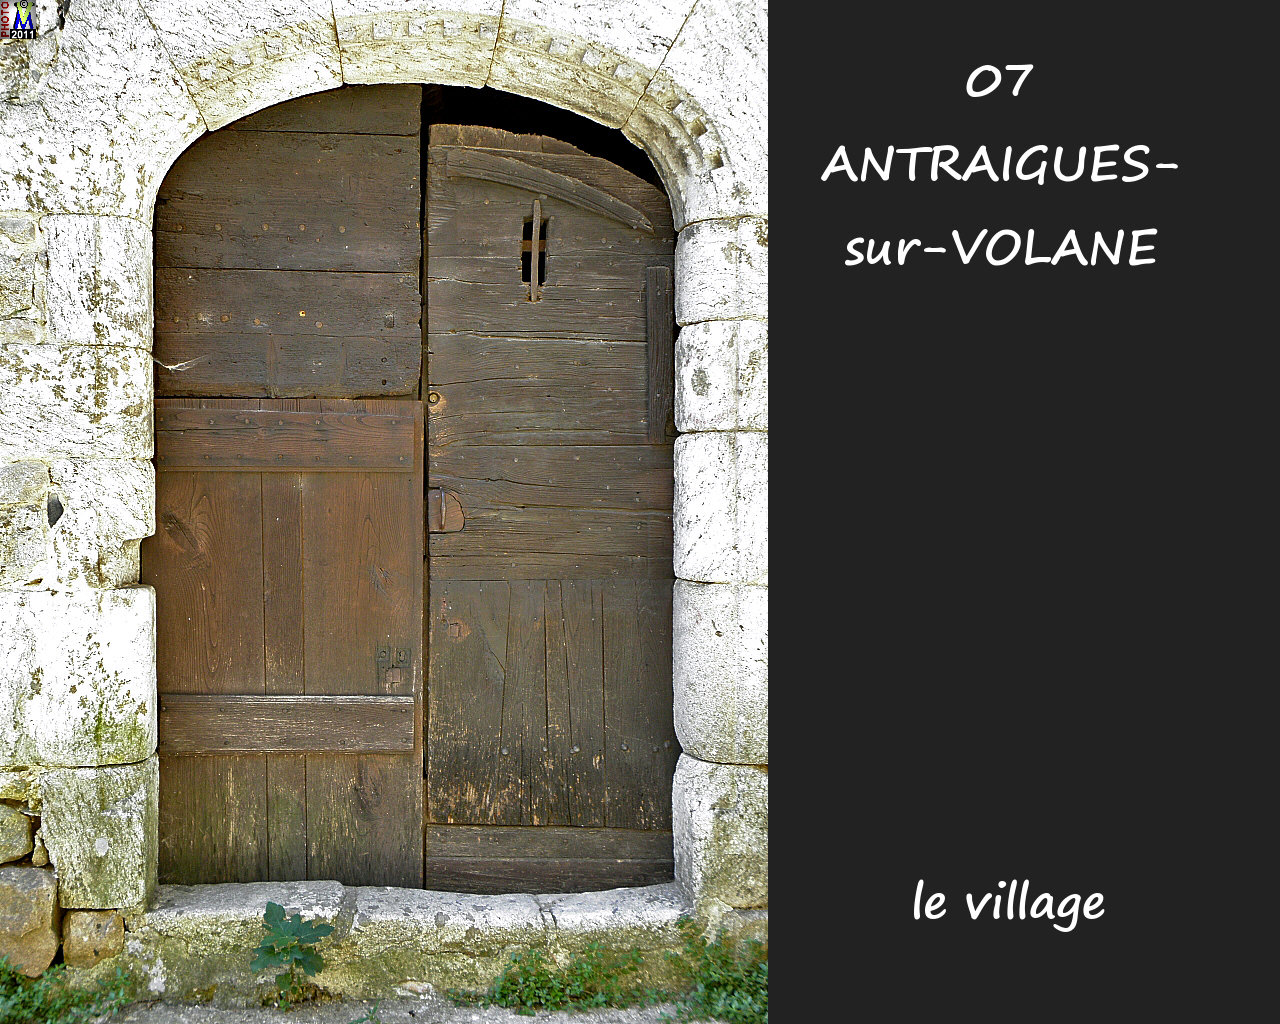 07ANTRAIGUES-VOLANE_village_128.jpg